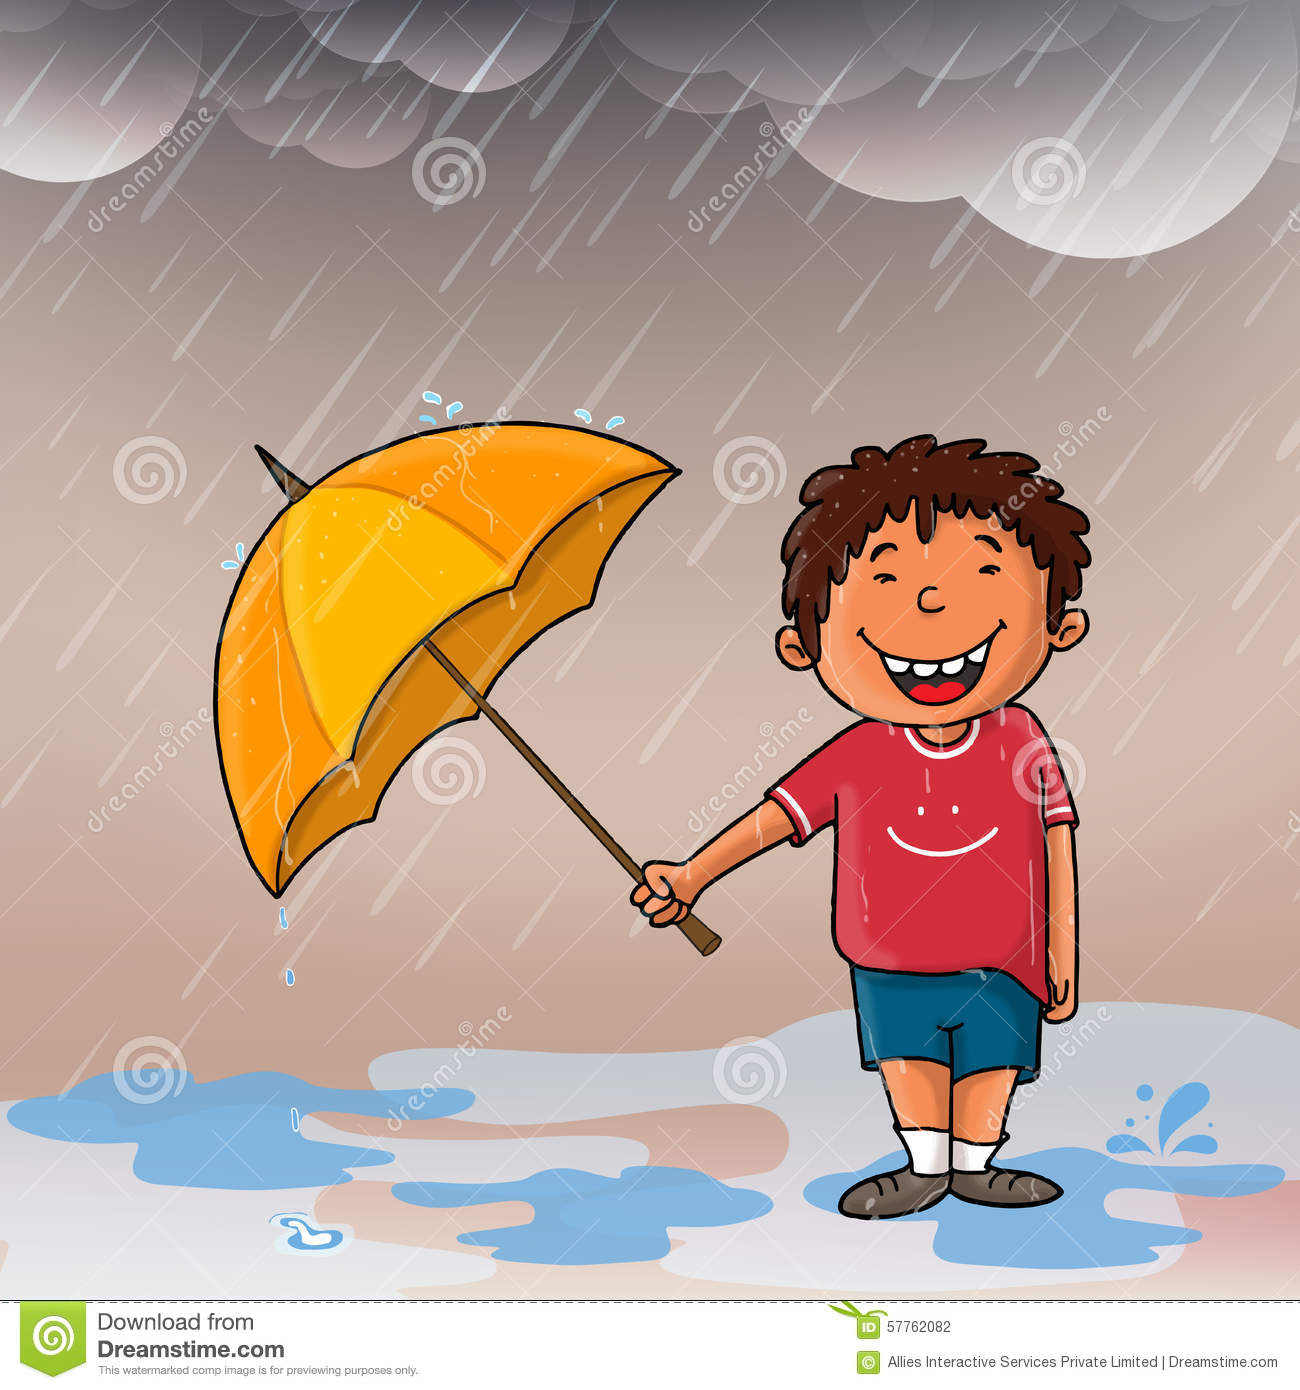 Indian Independence Day 3d Wallpapers Cute Boy Enjoying Rain Stock Illustration Image 57762082